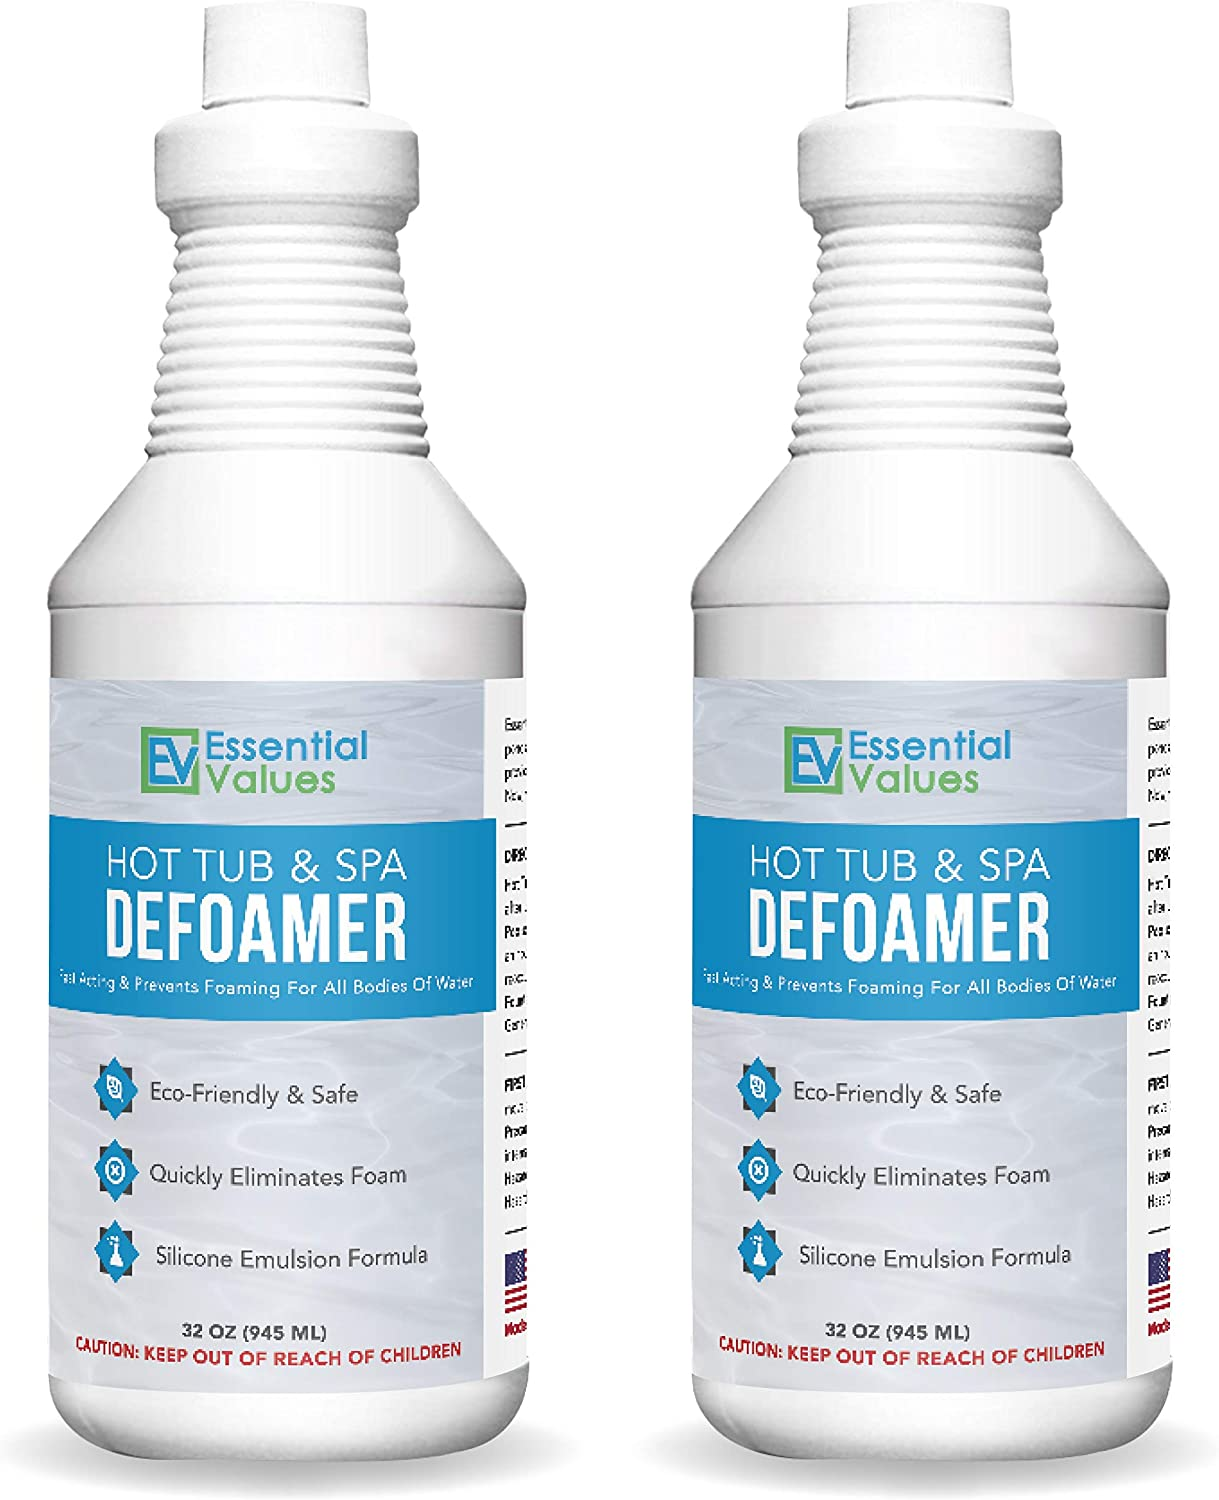 Essential Values 2 Pack Hot Tub, Pool & Spa Defoamer (32 OZ/Per Bottle) – Quickly Removes Foam Without The Use of Harsh Chemicals, Eco-Friendly & Safe with Silicone Emulsion Formula